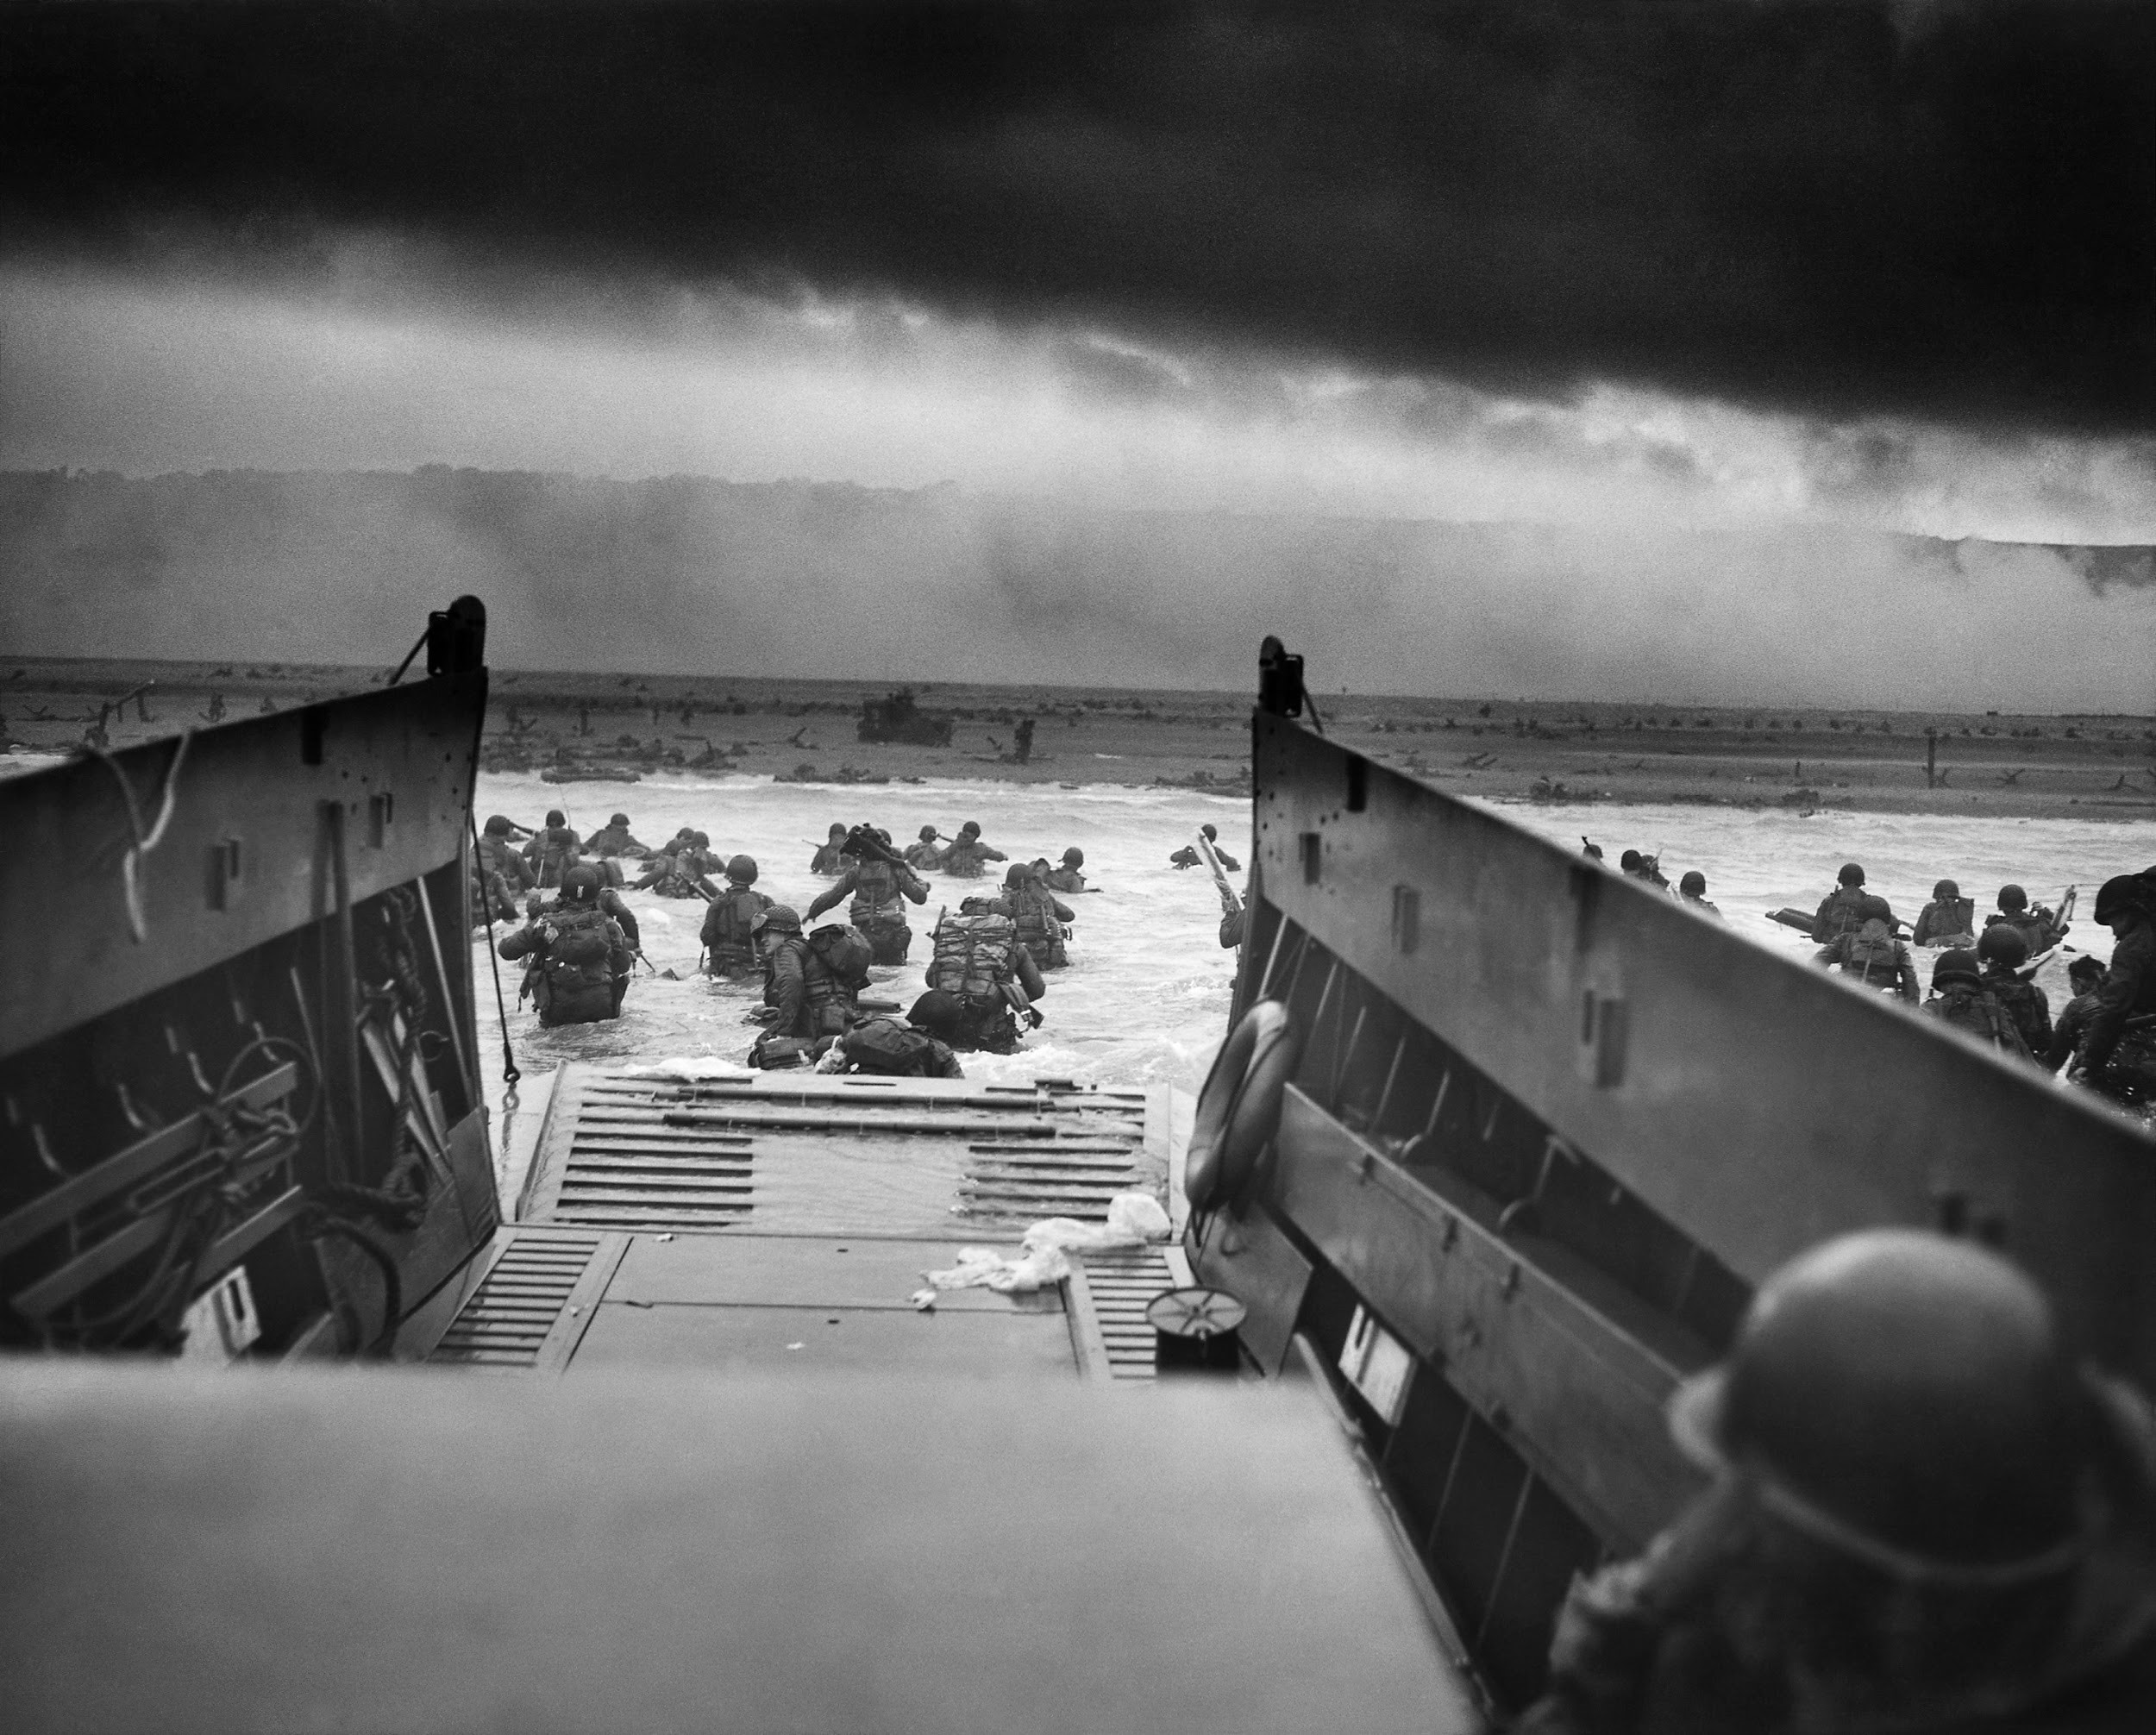 """One of the most-reproduced photographs of D-Day, """"Into the Jaws of Death"""" by Robert F. Sargent, shows American soldiers exiting a landing craft and wading ashore on an area of the Normandy coast designated """"Omaha Beach"""" on the morning of D-Day."""